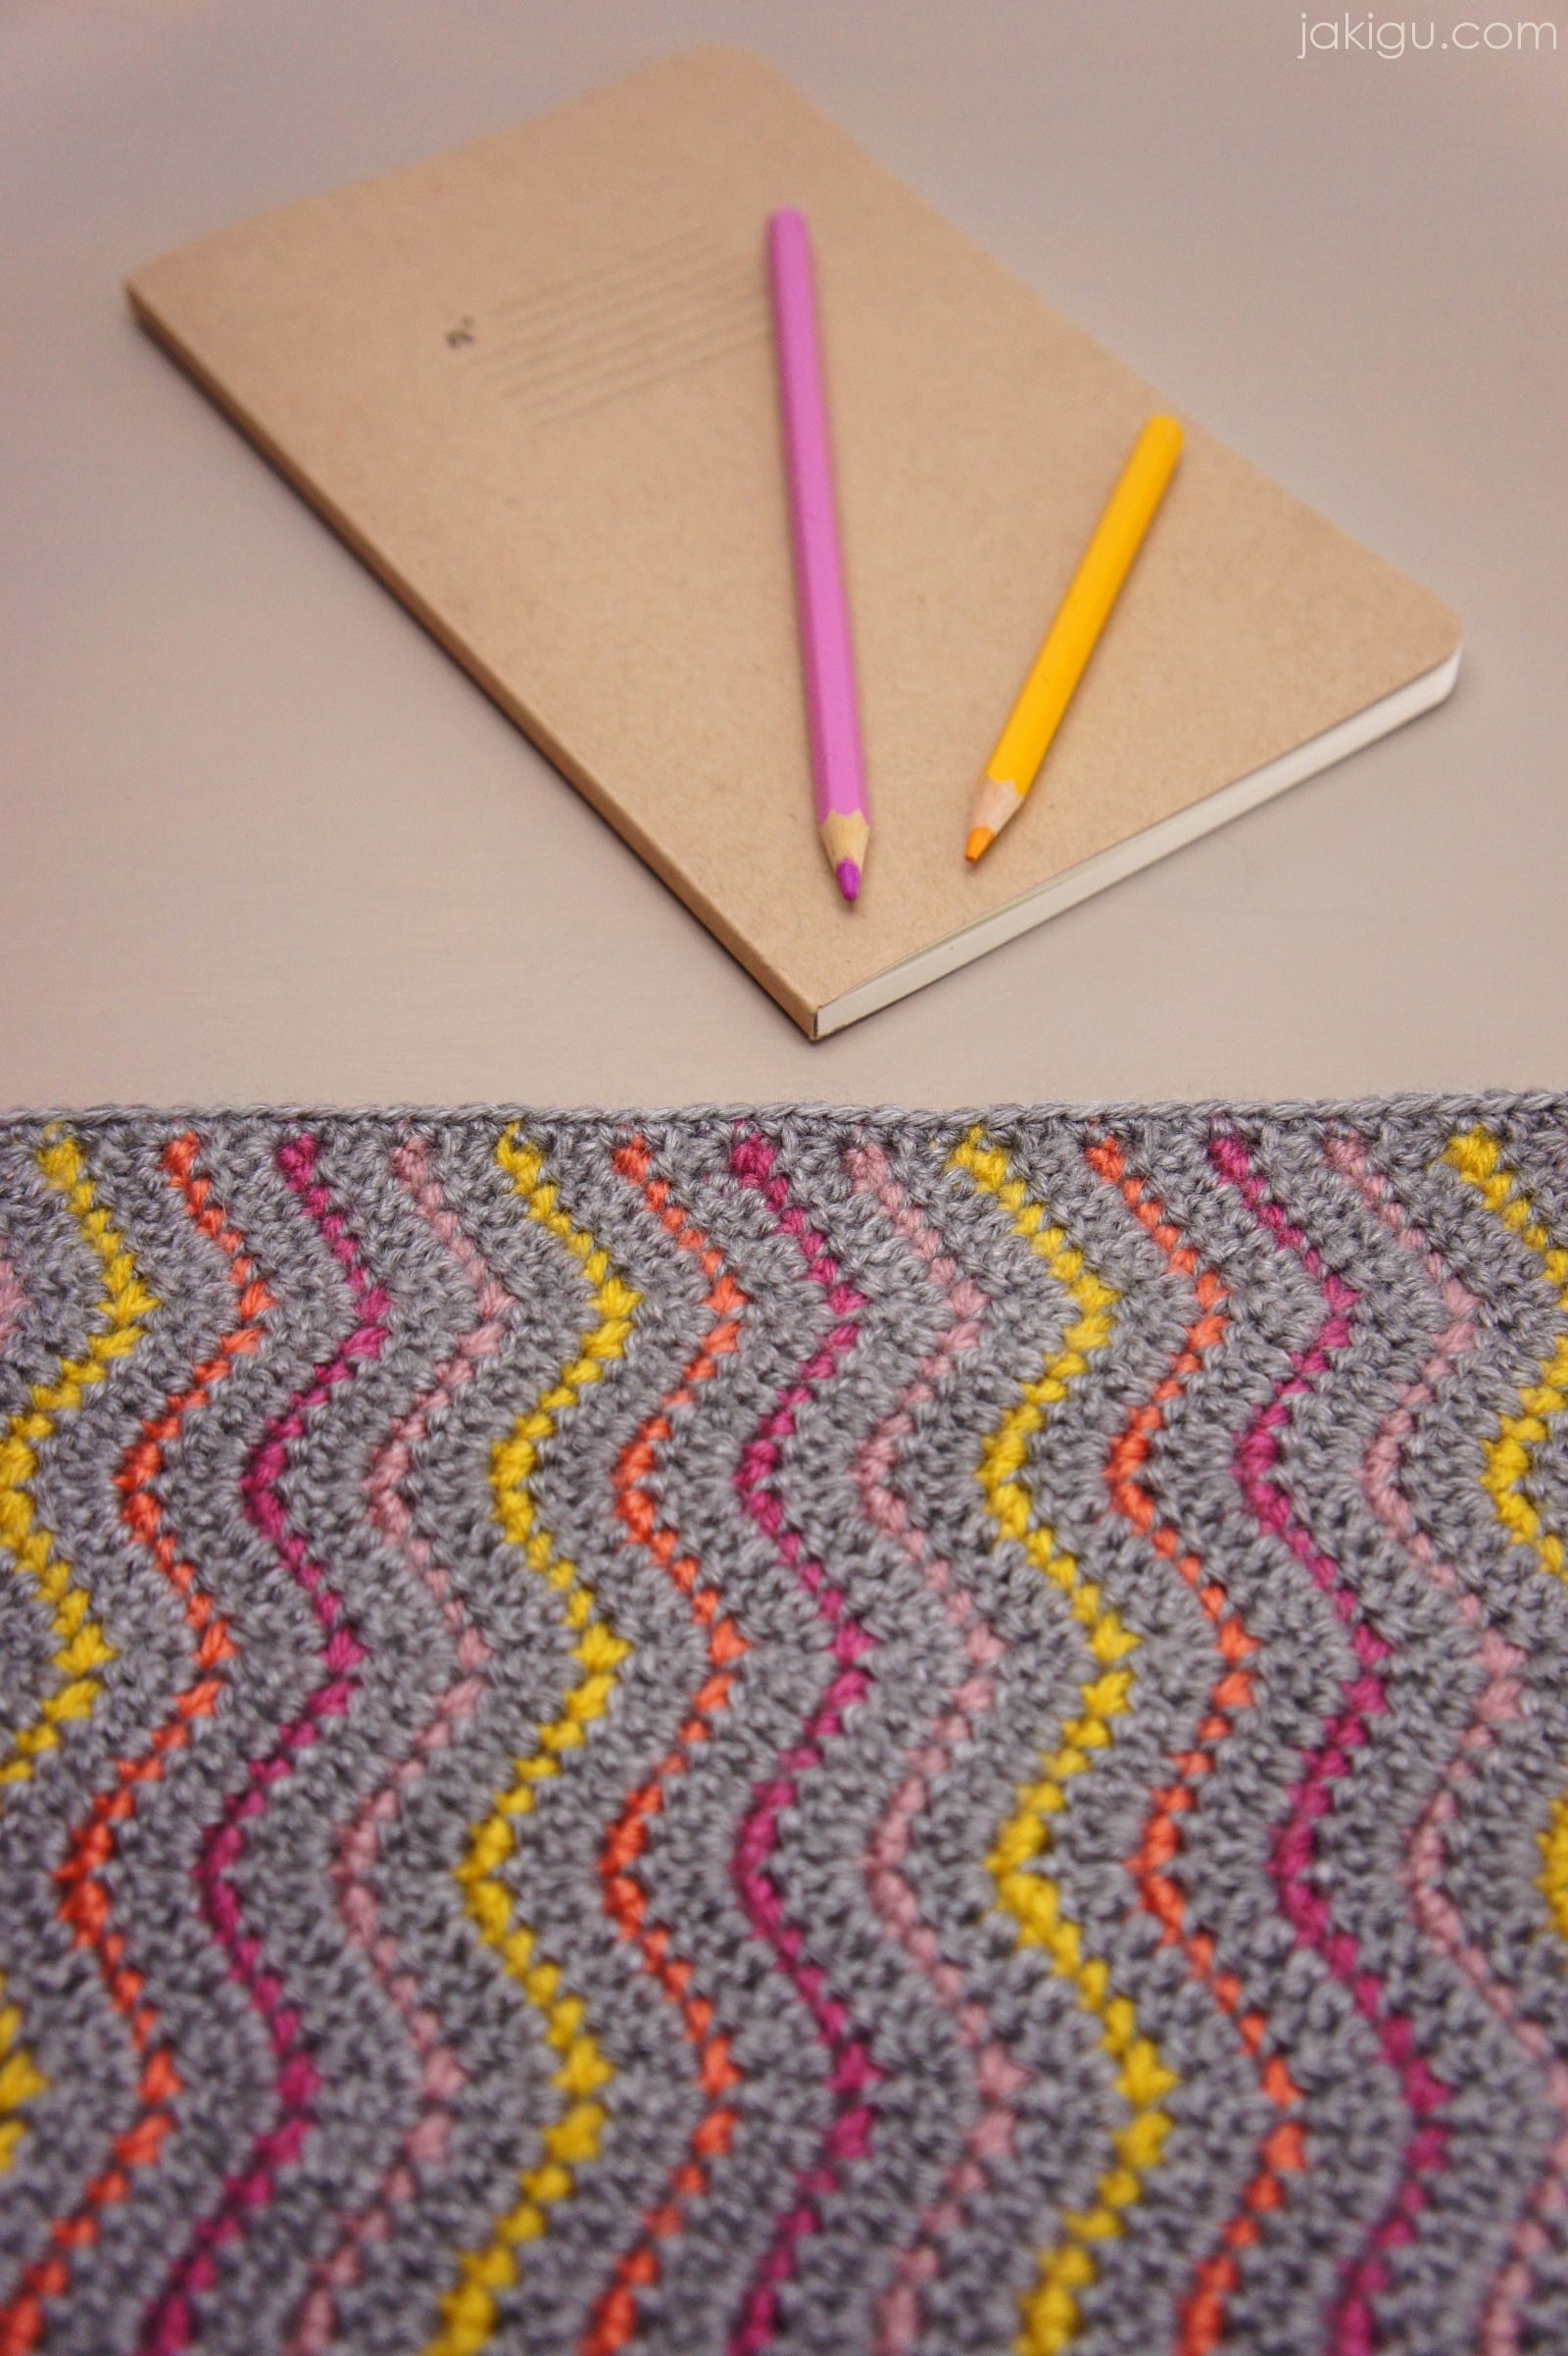 Book Cover Pattern Guide : Work in progress journal cover or clutch jakigu